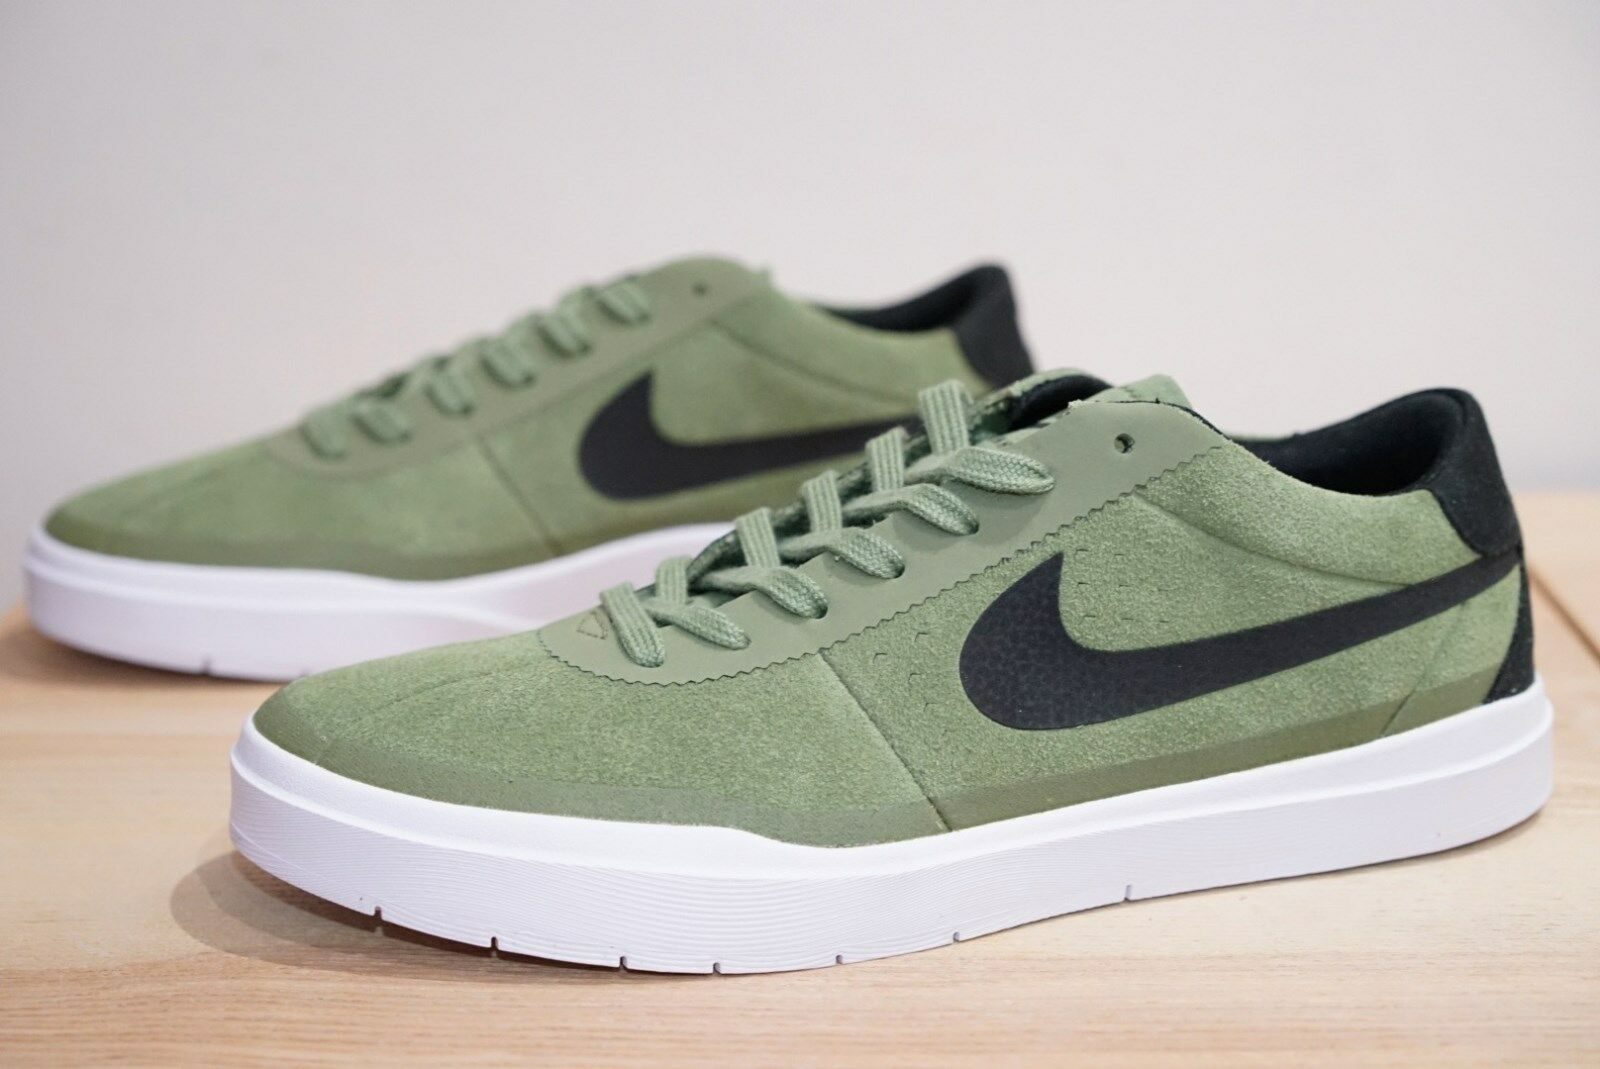 Nike SB Bruin Hyperfeel Homme Skate Board Chaussures Trainers